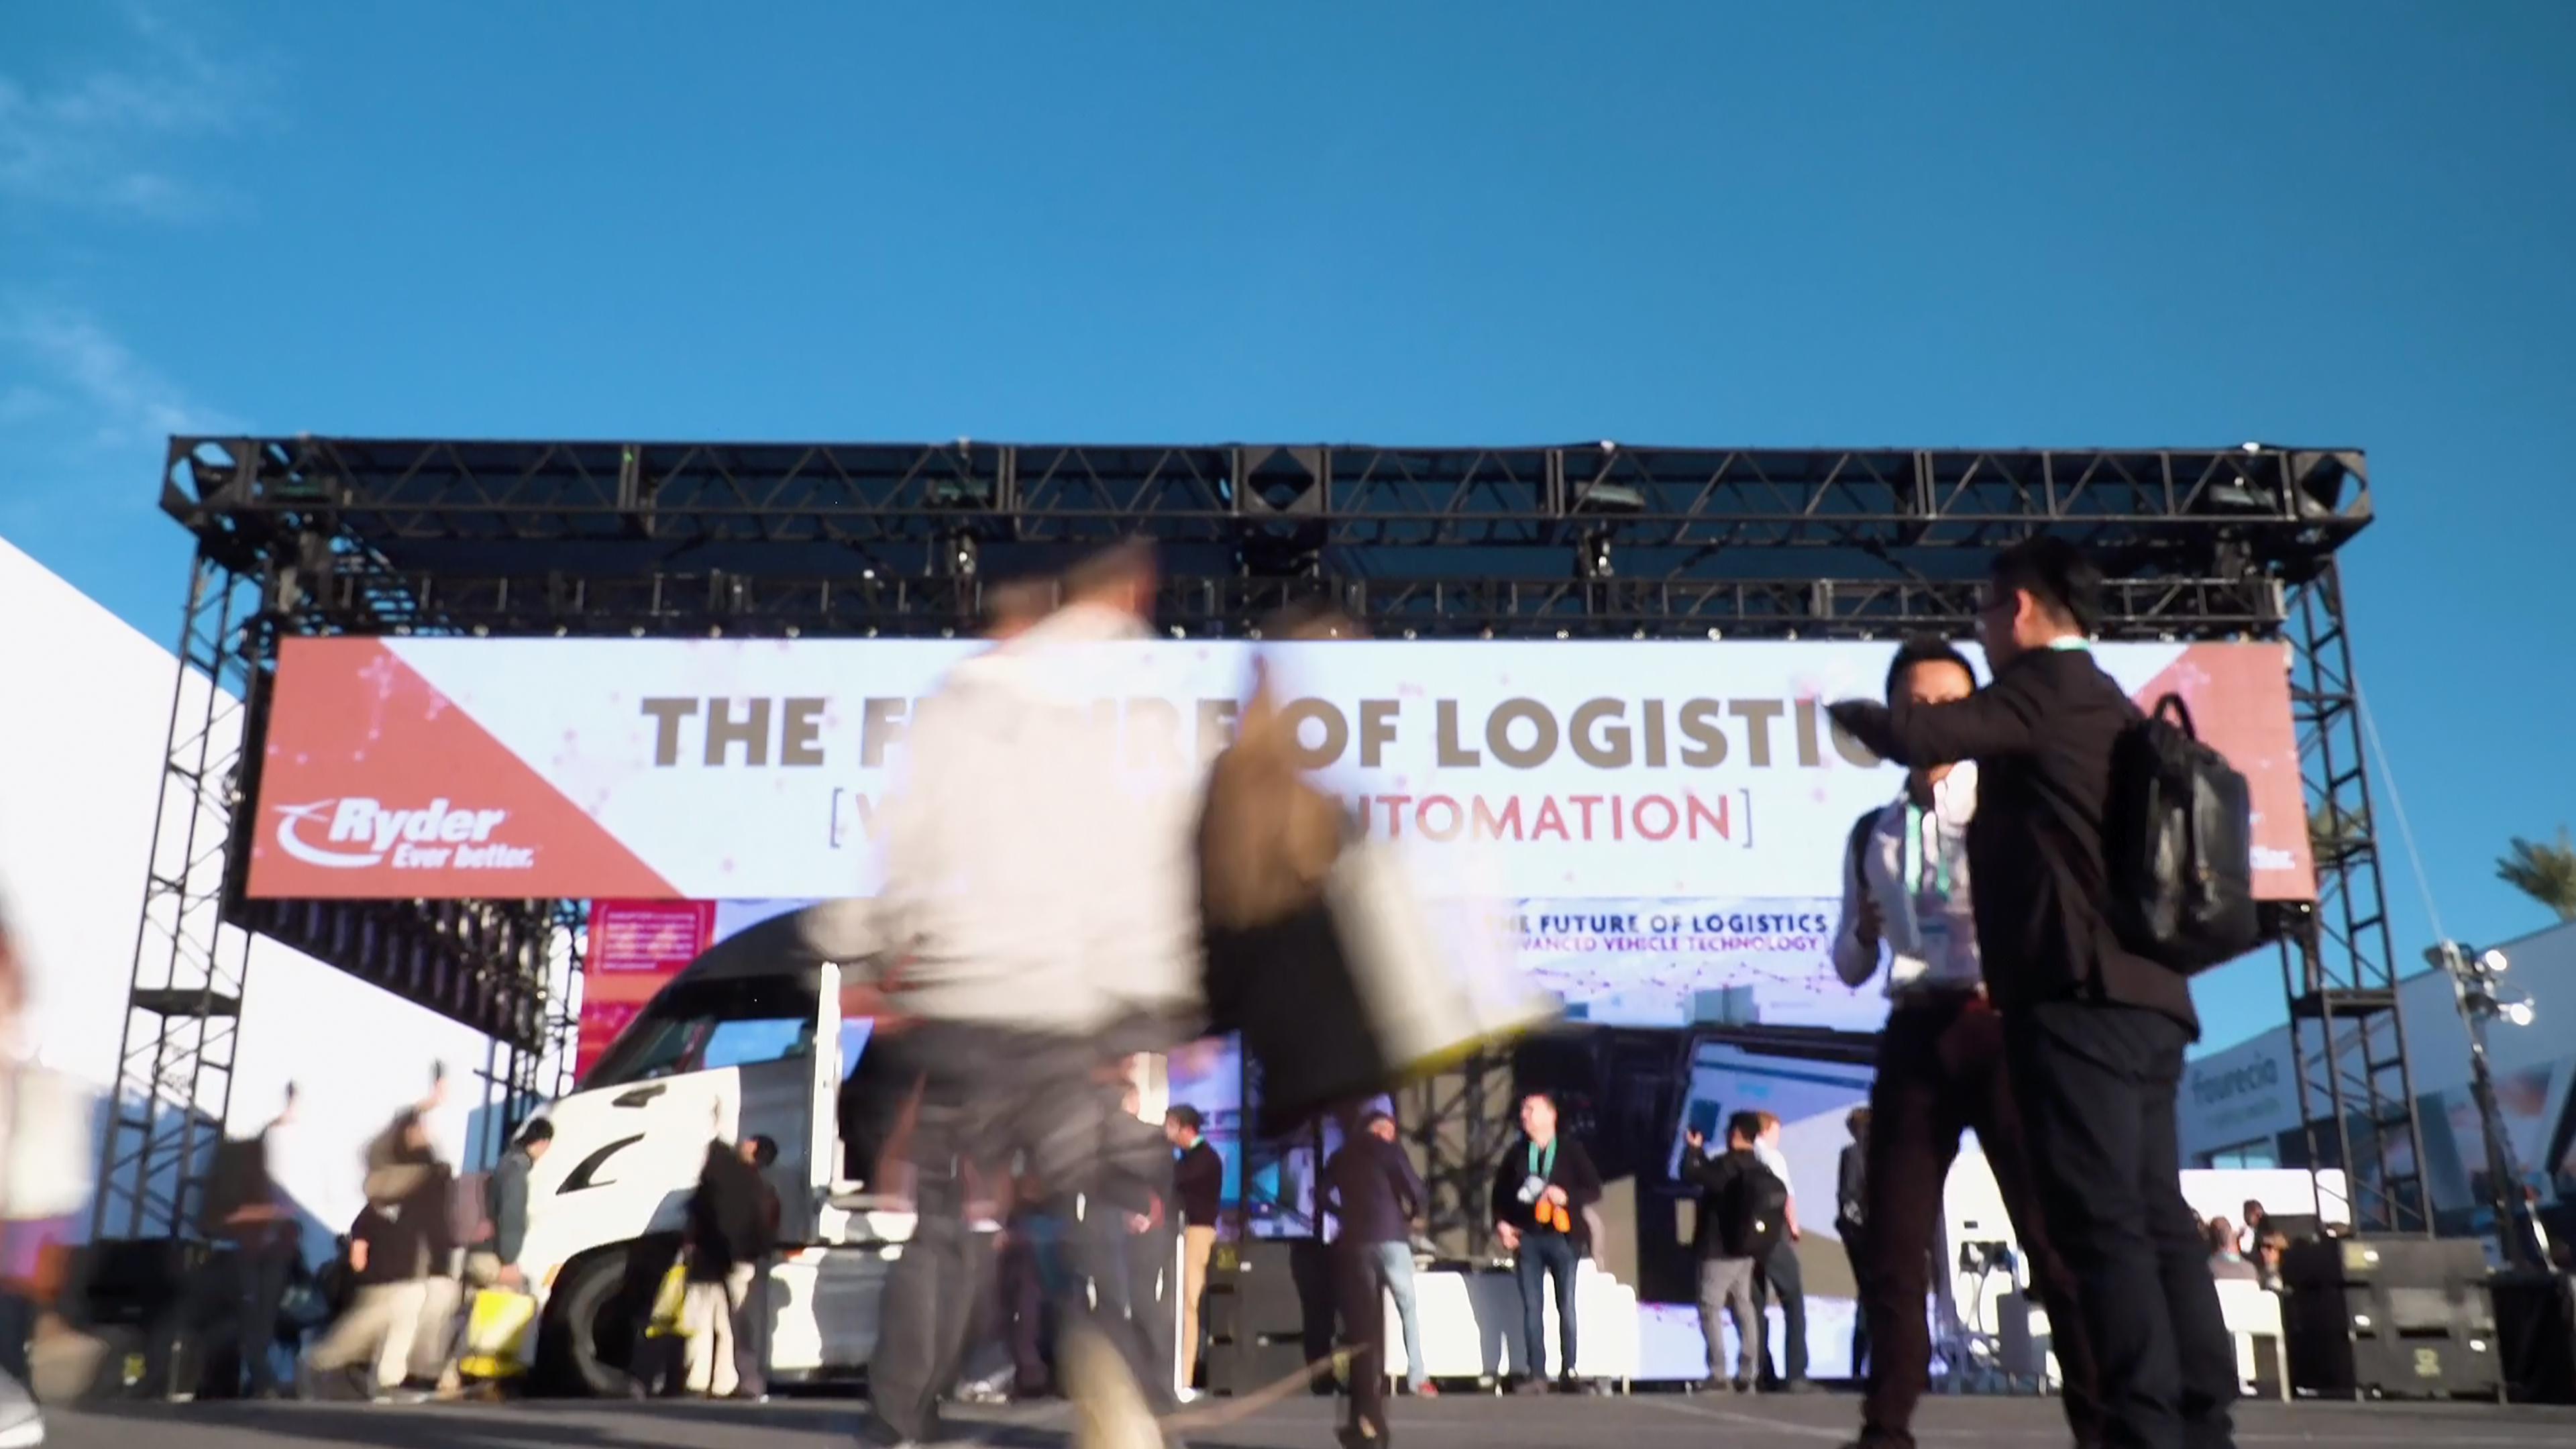 "Ryder focused on the ""Future of Logistics"" at the CES 2020 show in Las Vegas. The company showcased its investment in cutting-edge technologies aimed at advancing the logistics industry, while seeking out the latest innovations and the start-ups behind them. (Photo: Business Wire)"